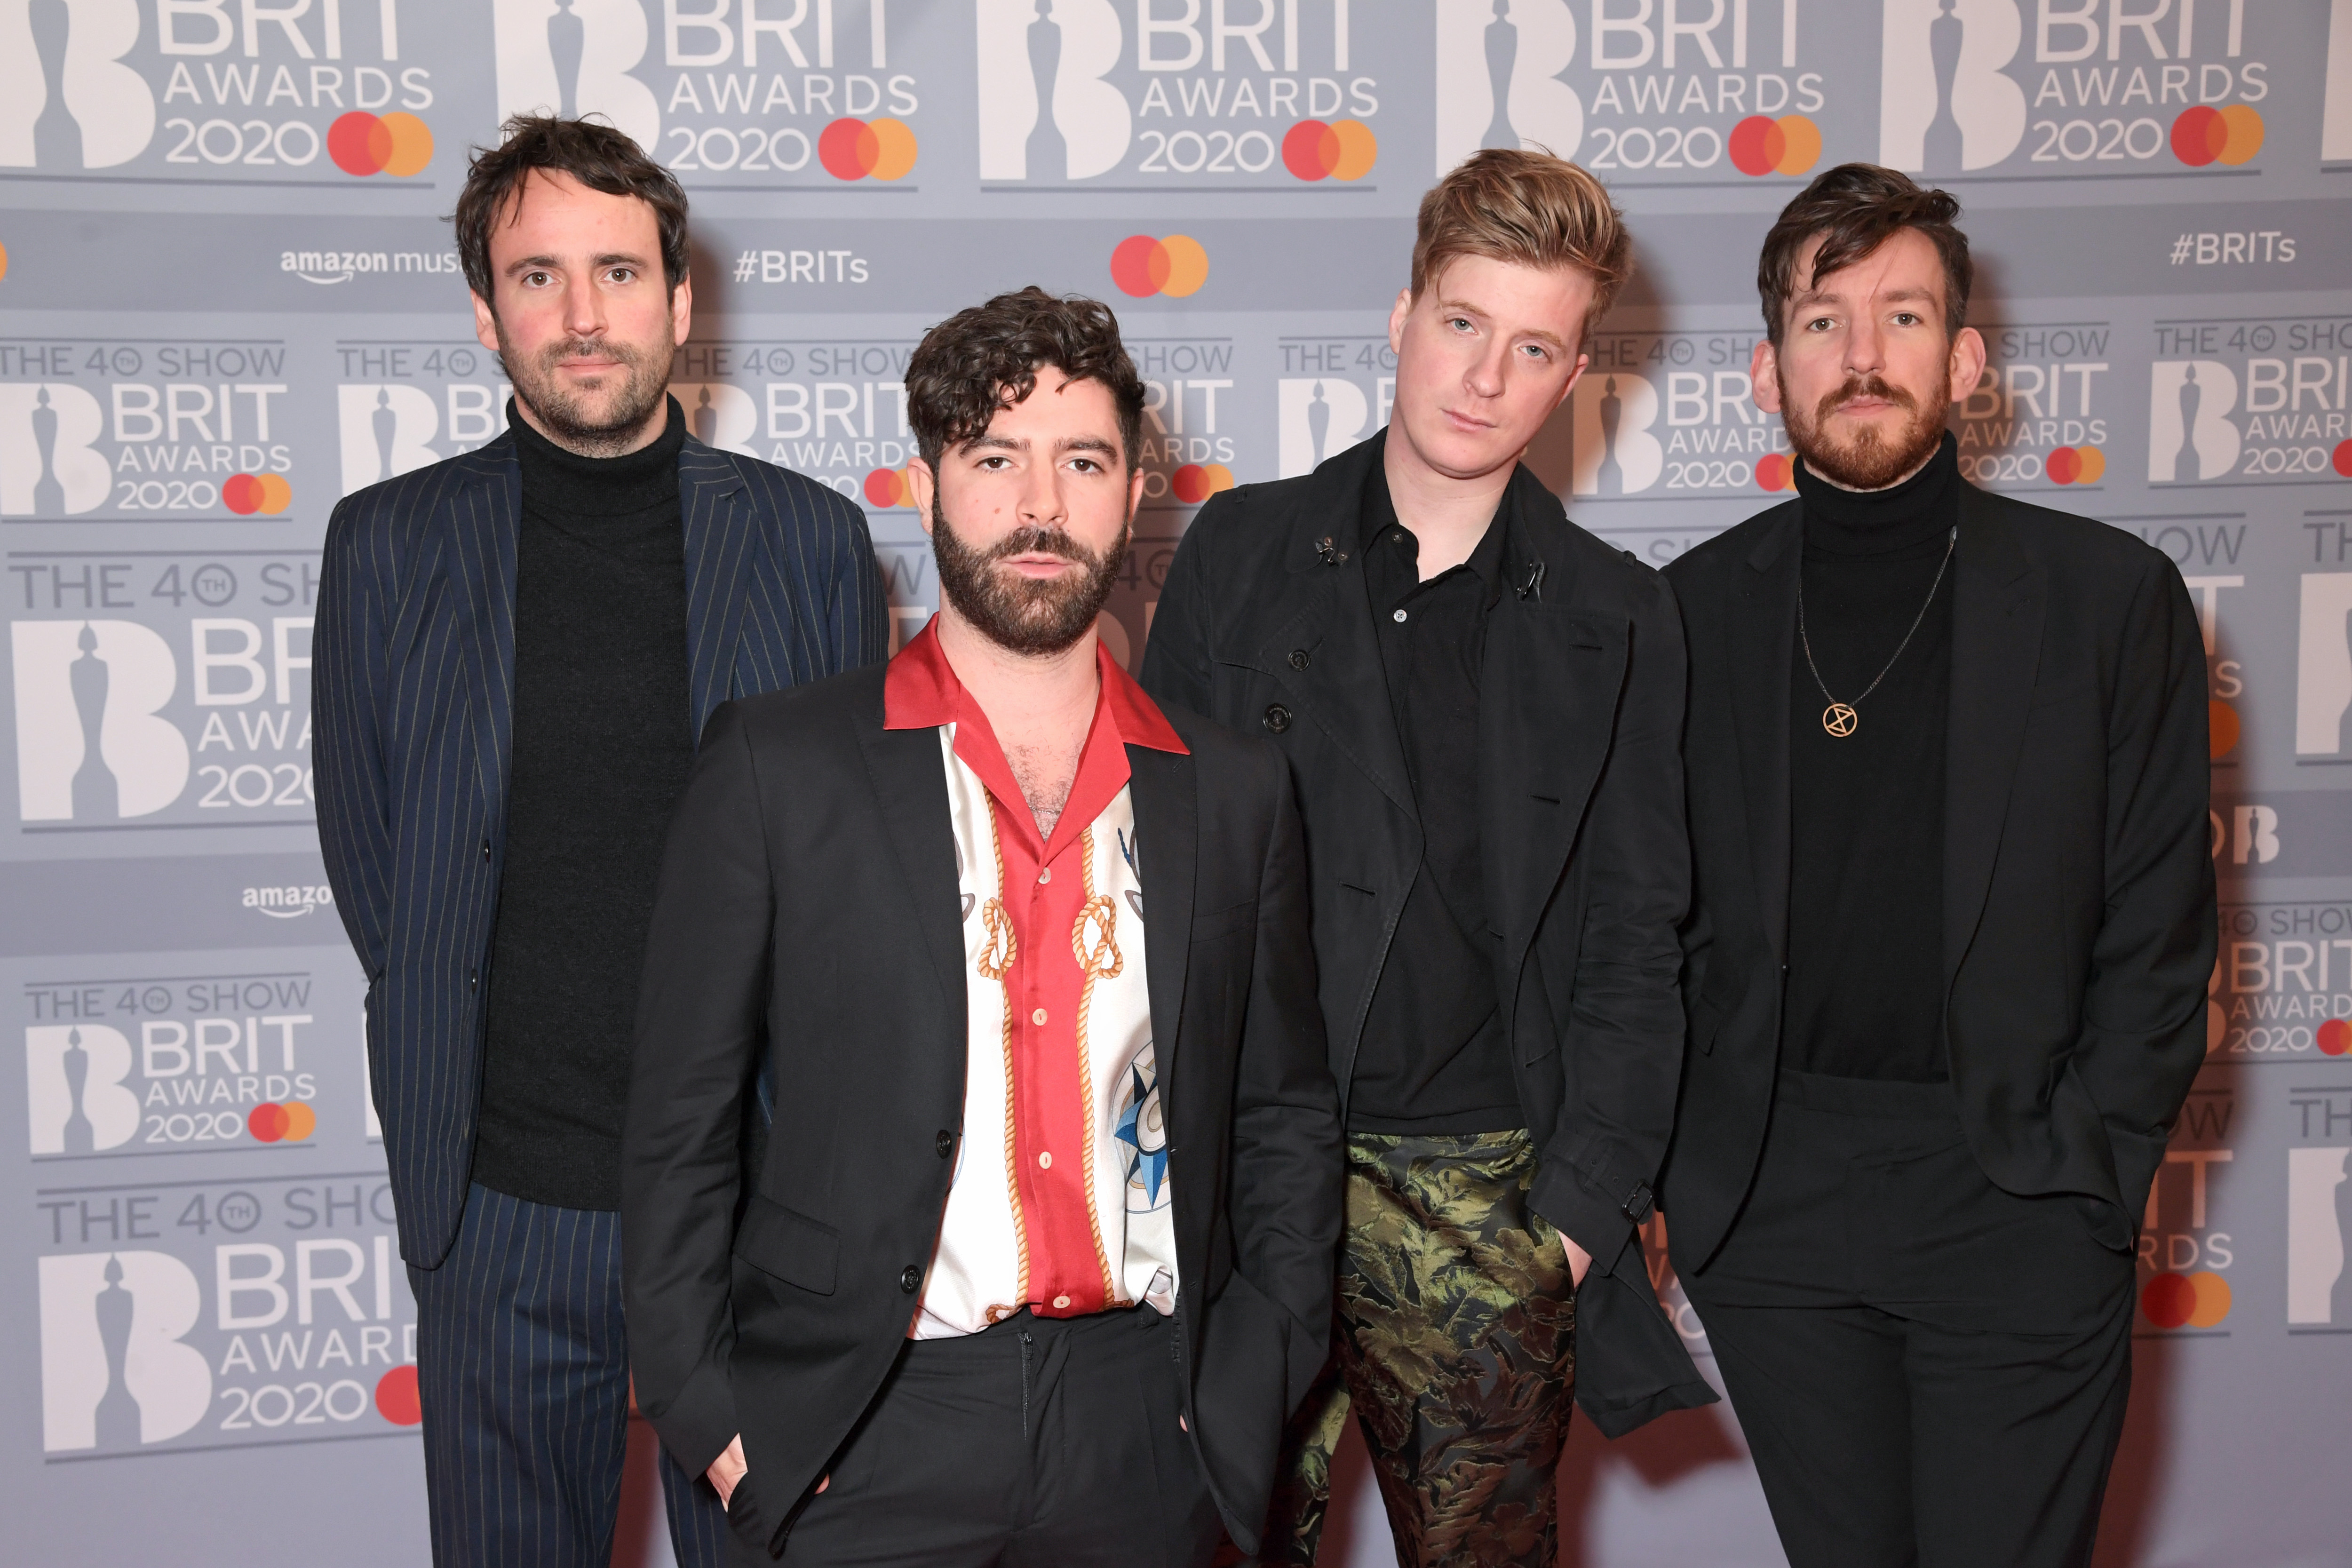 (L to R) Jimmy Smith, Yannis Philippakis, Jack Bevan and Edwin Congreave of Foals attend The BRIT Awards 2020 at The O2 Arena on February 18, 2020 in London, England.  (Photo by David M. Benett/Dave Benett/Getty Images)